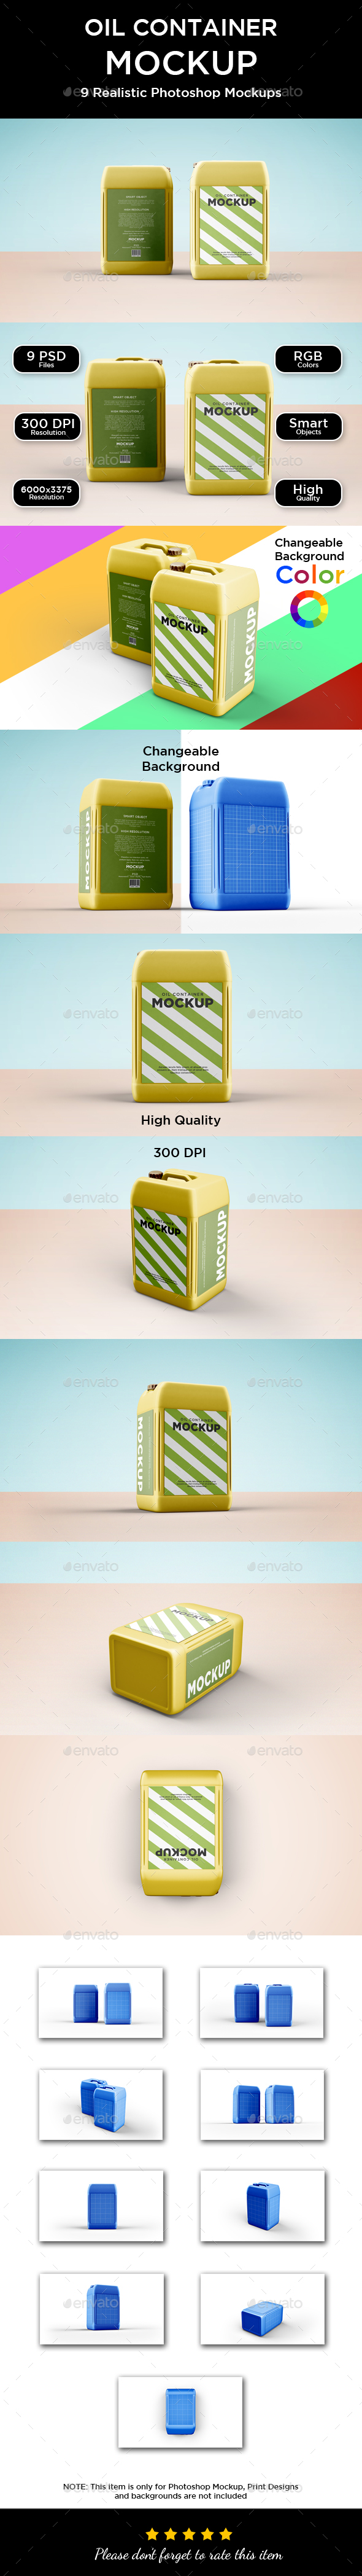 Oil Container Mockup - Packaging Product Mock-Ups